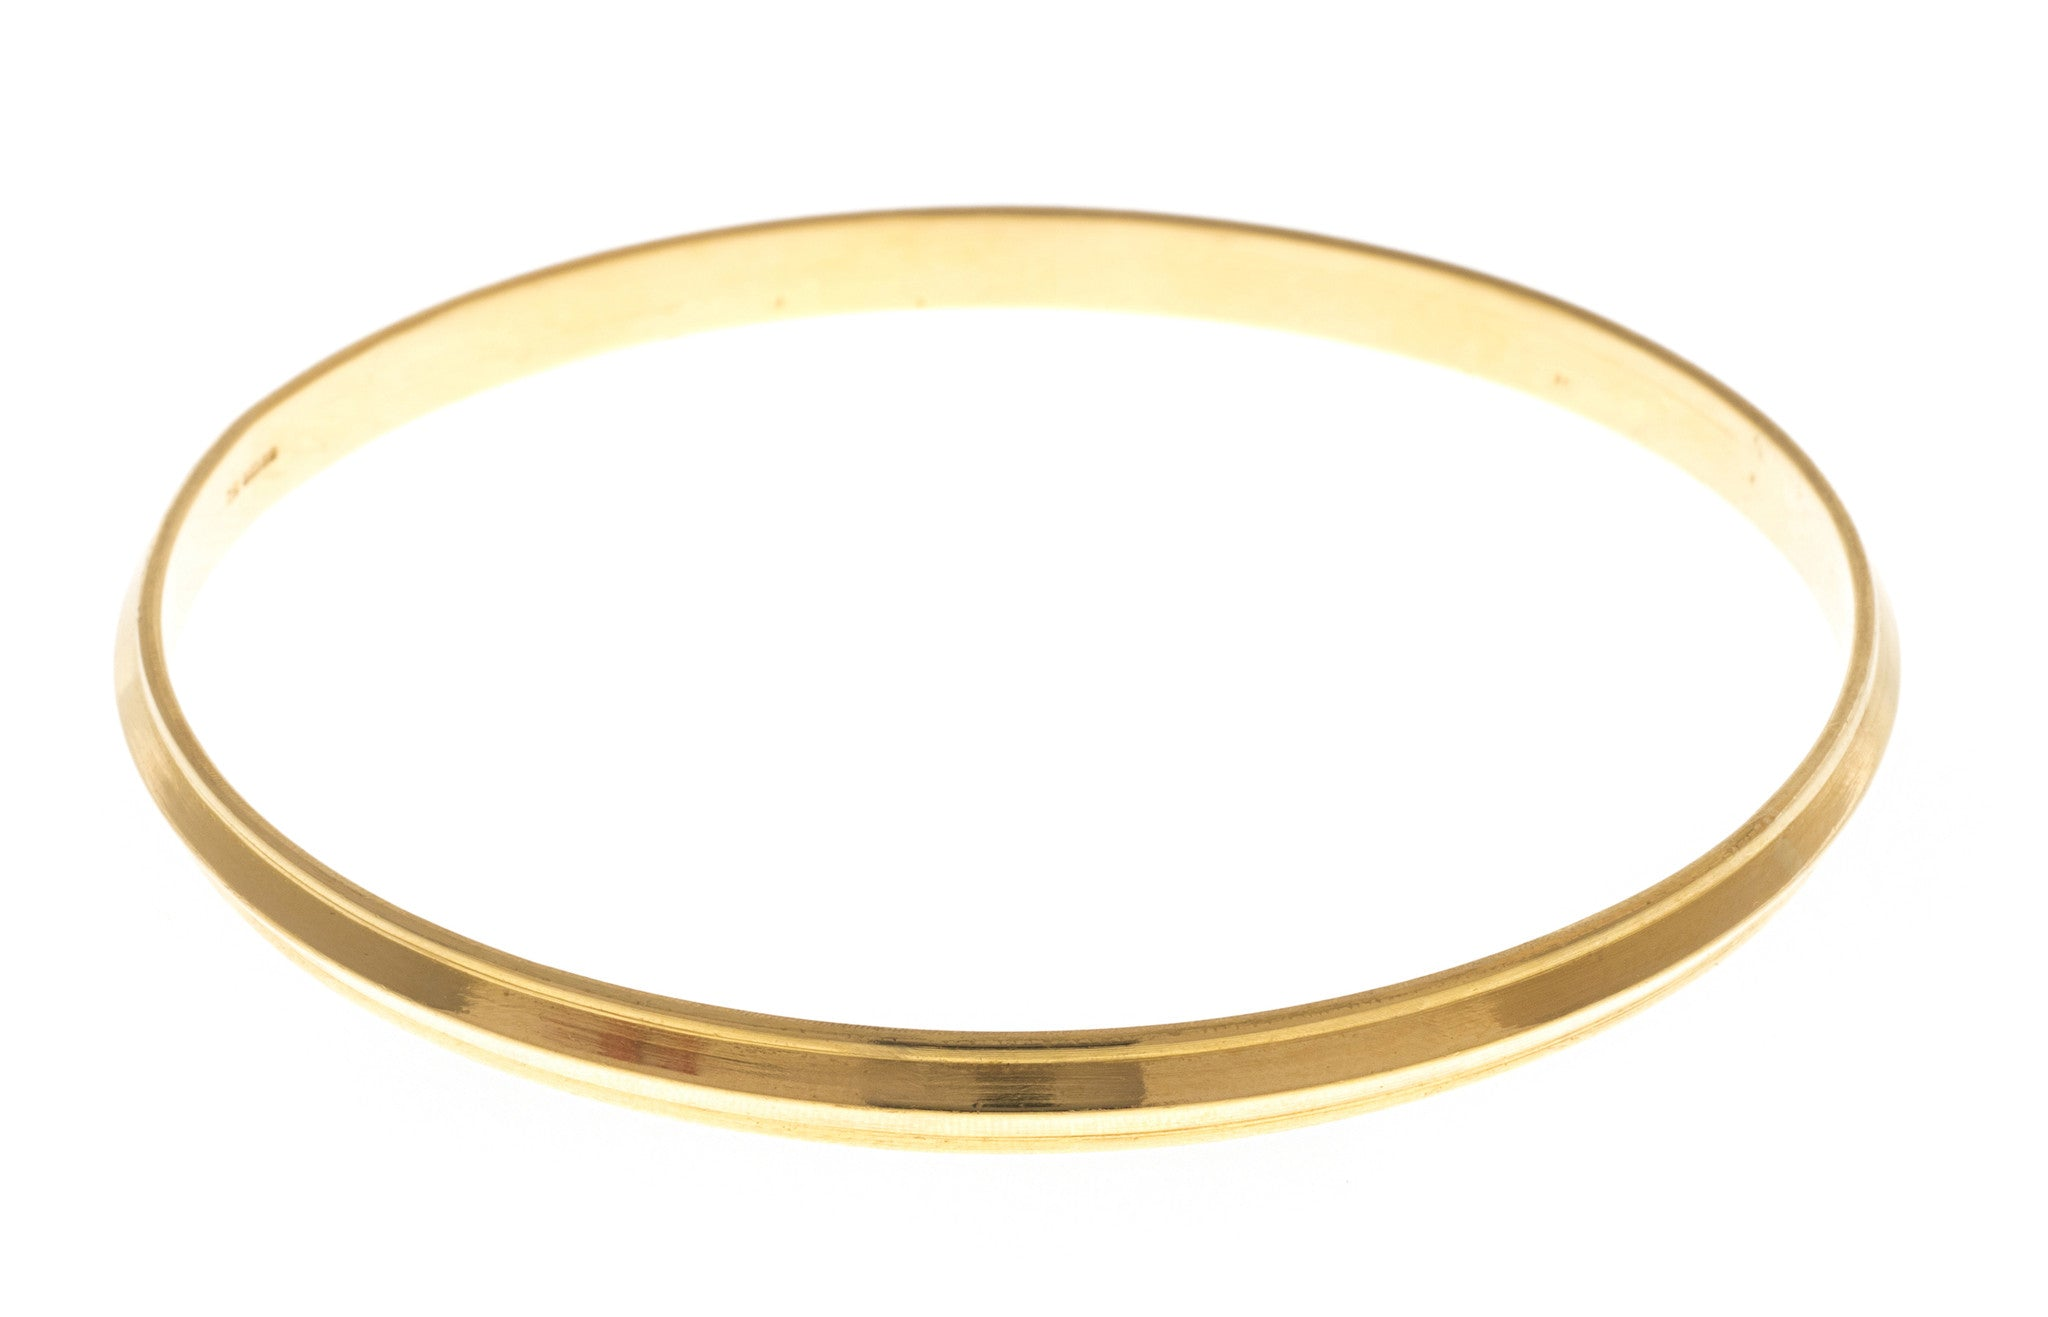 Hand Finished 22ct Yellow Gold 'Kada' Bangle, Minar Jewellers - 2